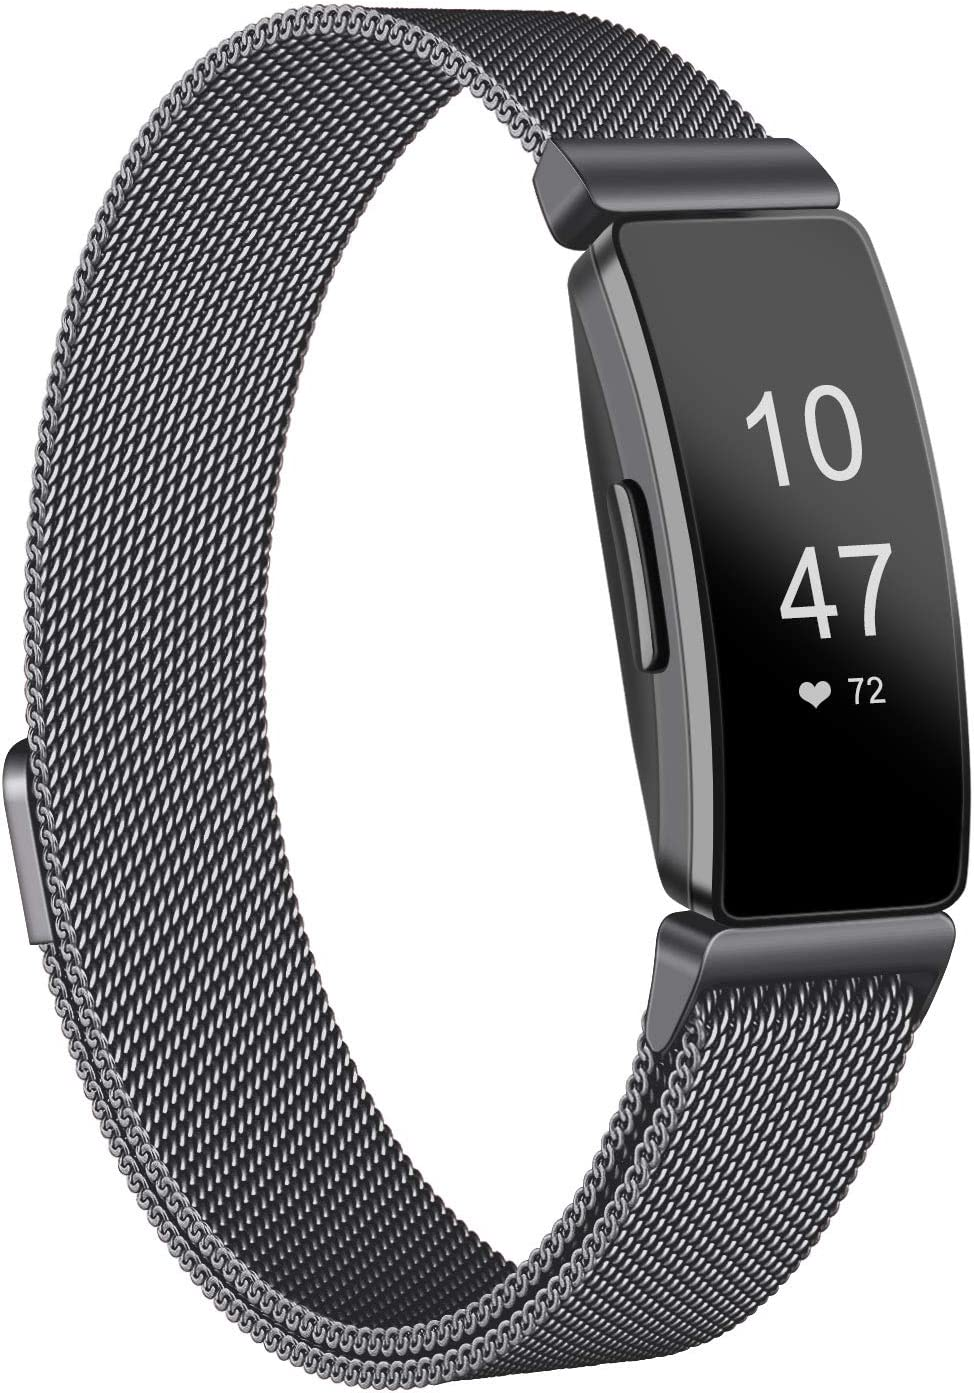 Amzpas Bands Compatible with Fitbit Inspire 2 & Fitbit Inspire HR & Fitbit Inspire & Fitbit Ace 2, Breathable Stainless Steel Loop Mesh Magnetic Adjustable Wristband for Women Men(Small,Dark Gray)